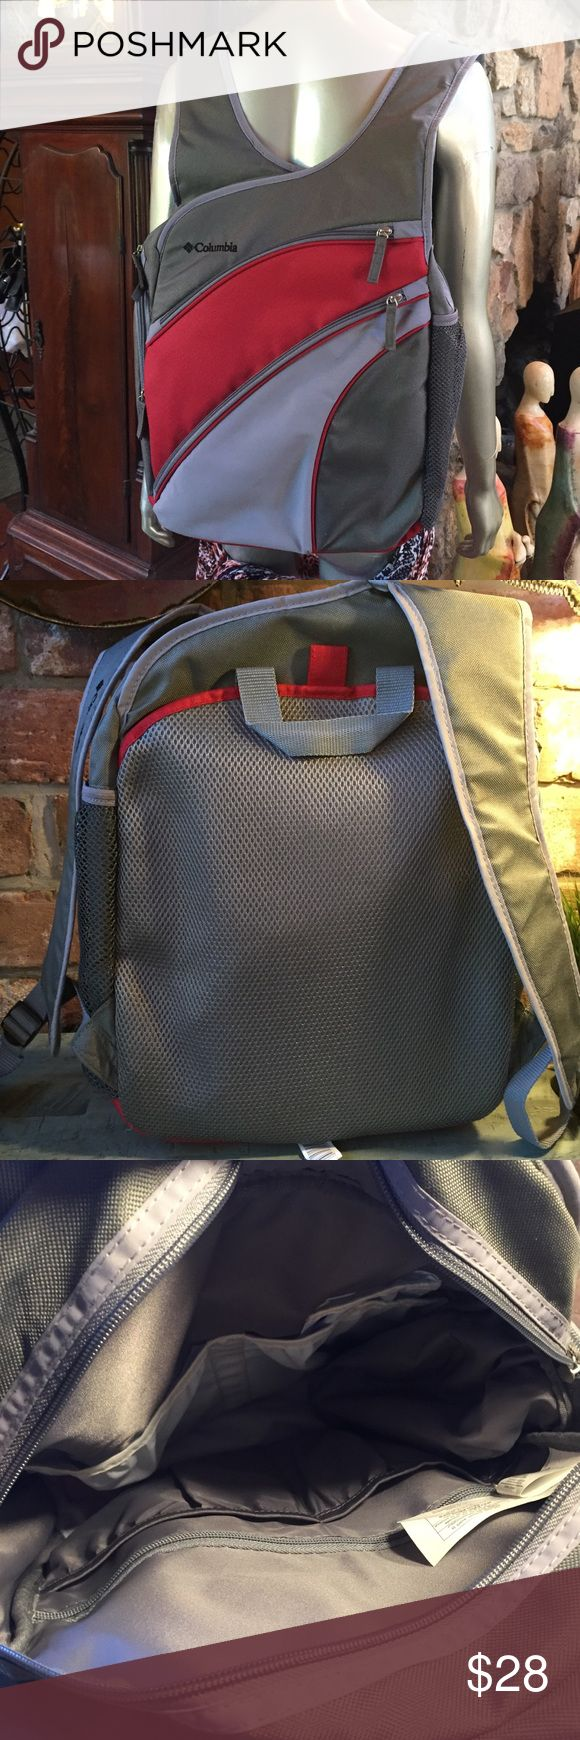 Columbia backpack. New w/o tags Versatile use, can be a diaper bag, or not! It comes with many pockets inside, a insulated pocket on outside, 2 zippered sleeves  on the outside. Very well padded. Never used, was a gift. Columbia Bags Backpacks